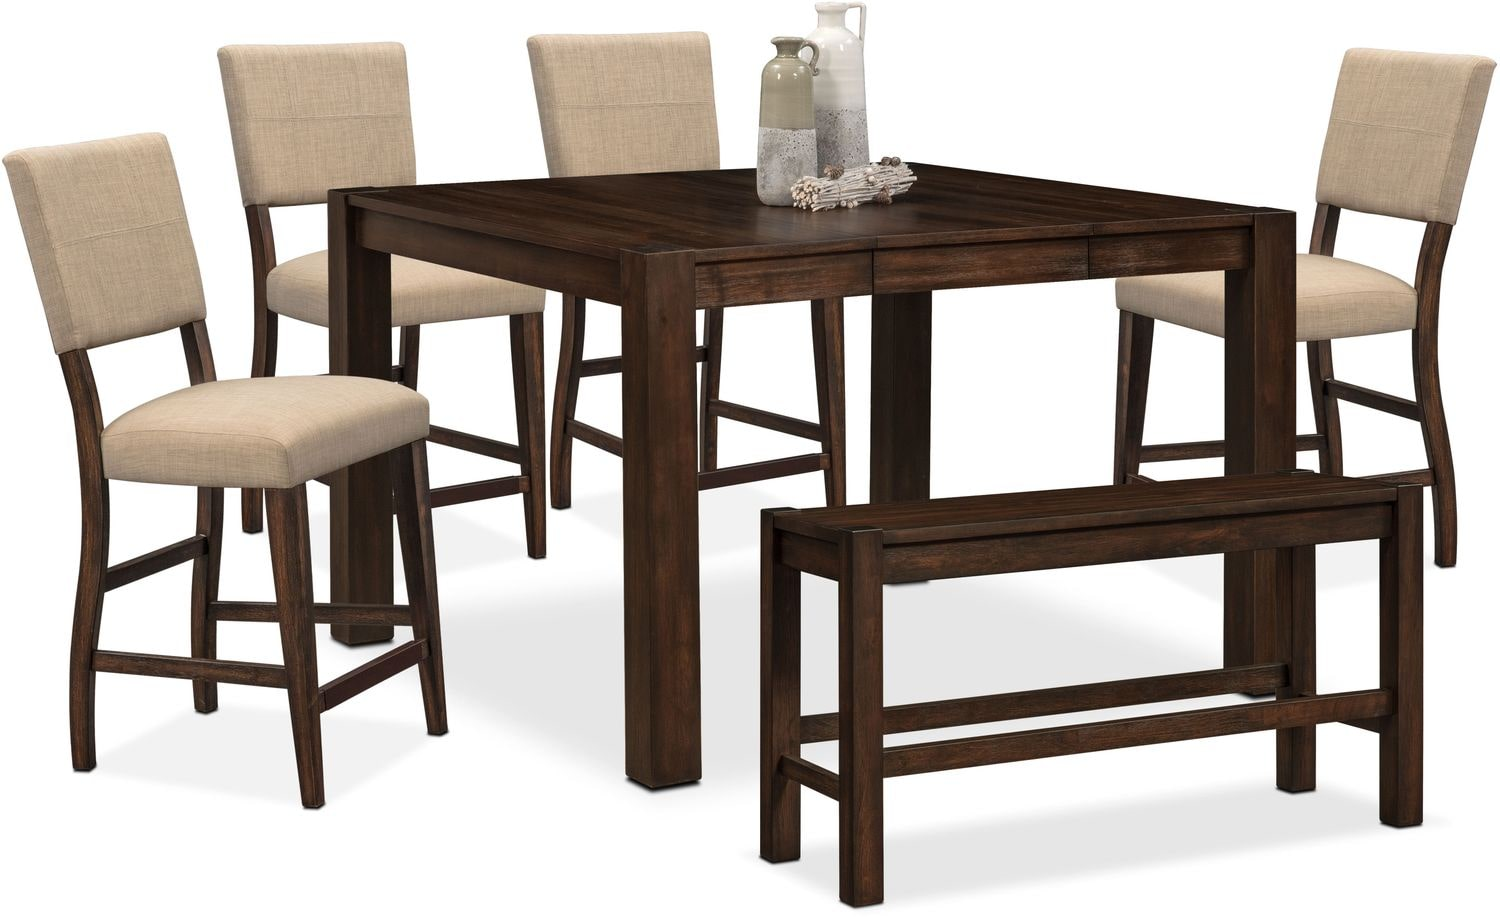 Dining Table With Bench And Chairs Tribeca Counter Height Table 4 Upholstered Side Chairs